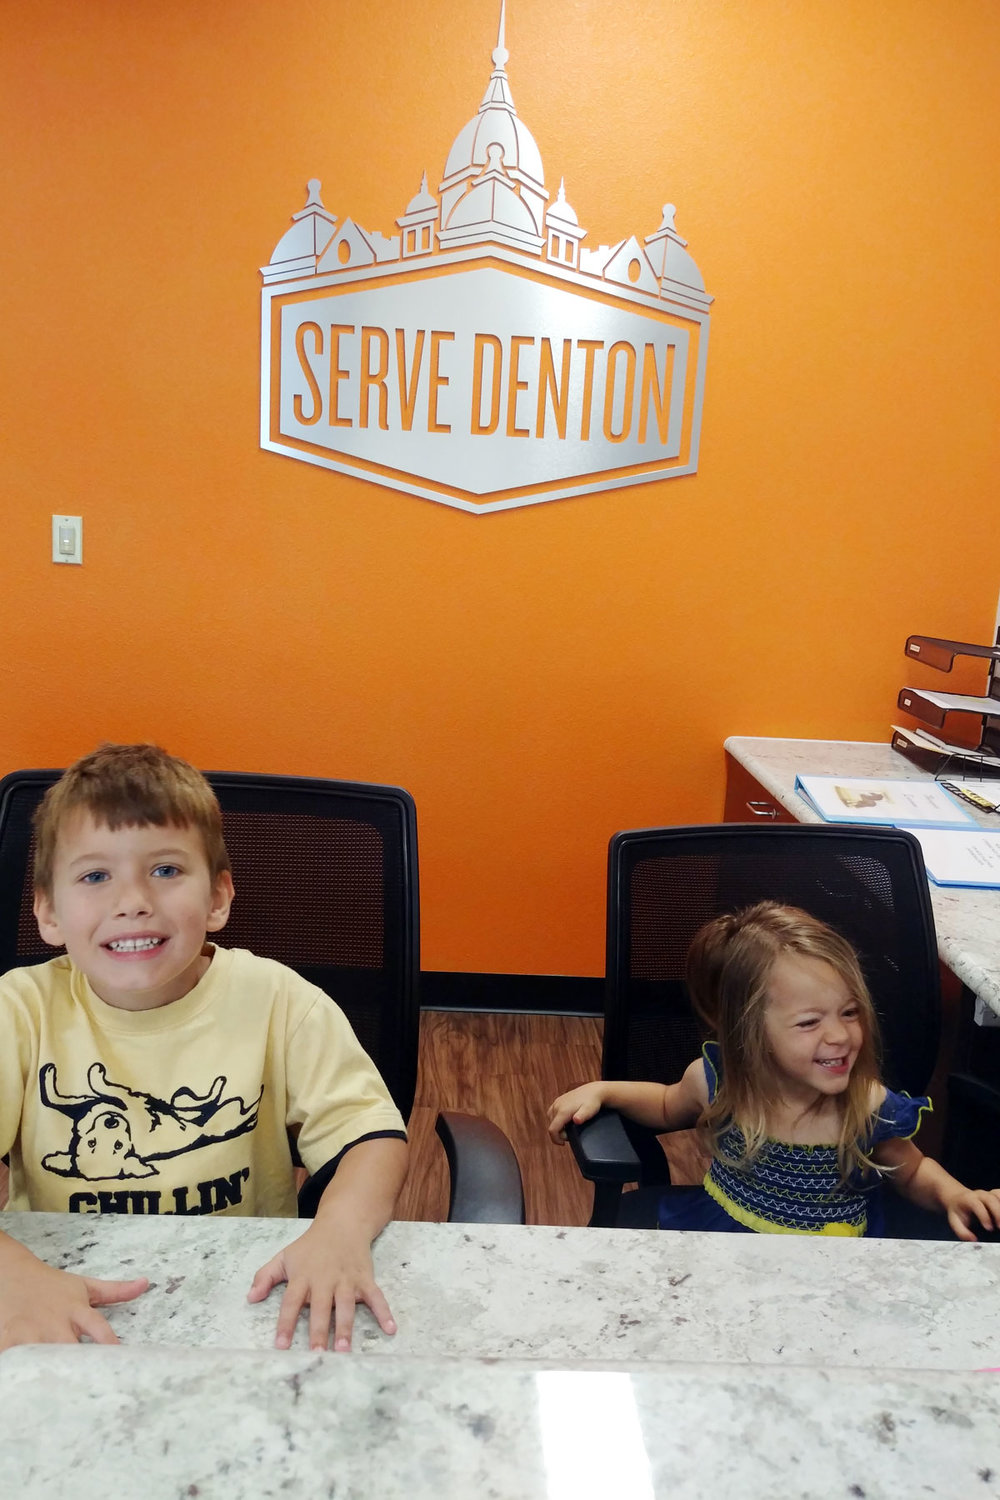 Ashlee's children Morrison (6) and Maybel (3) often come with Ashlee when she volunteers at the Serve Denton Center.